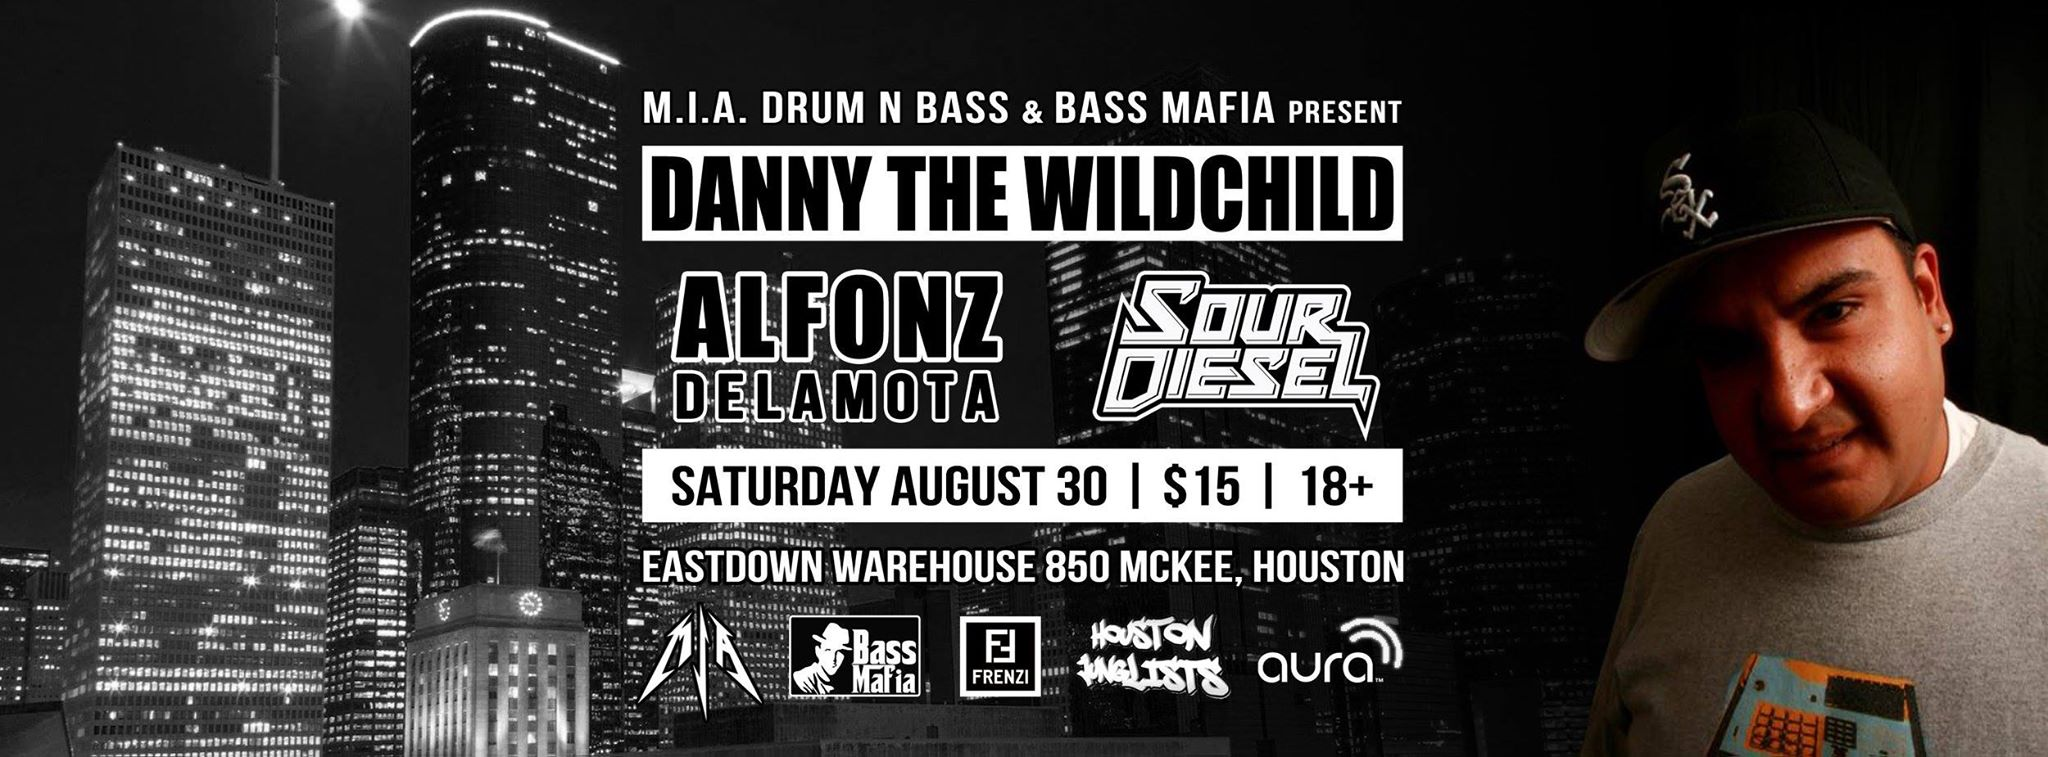 FREE STUFF Win Tickets to Danny The Wildchild in Houston